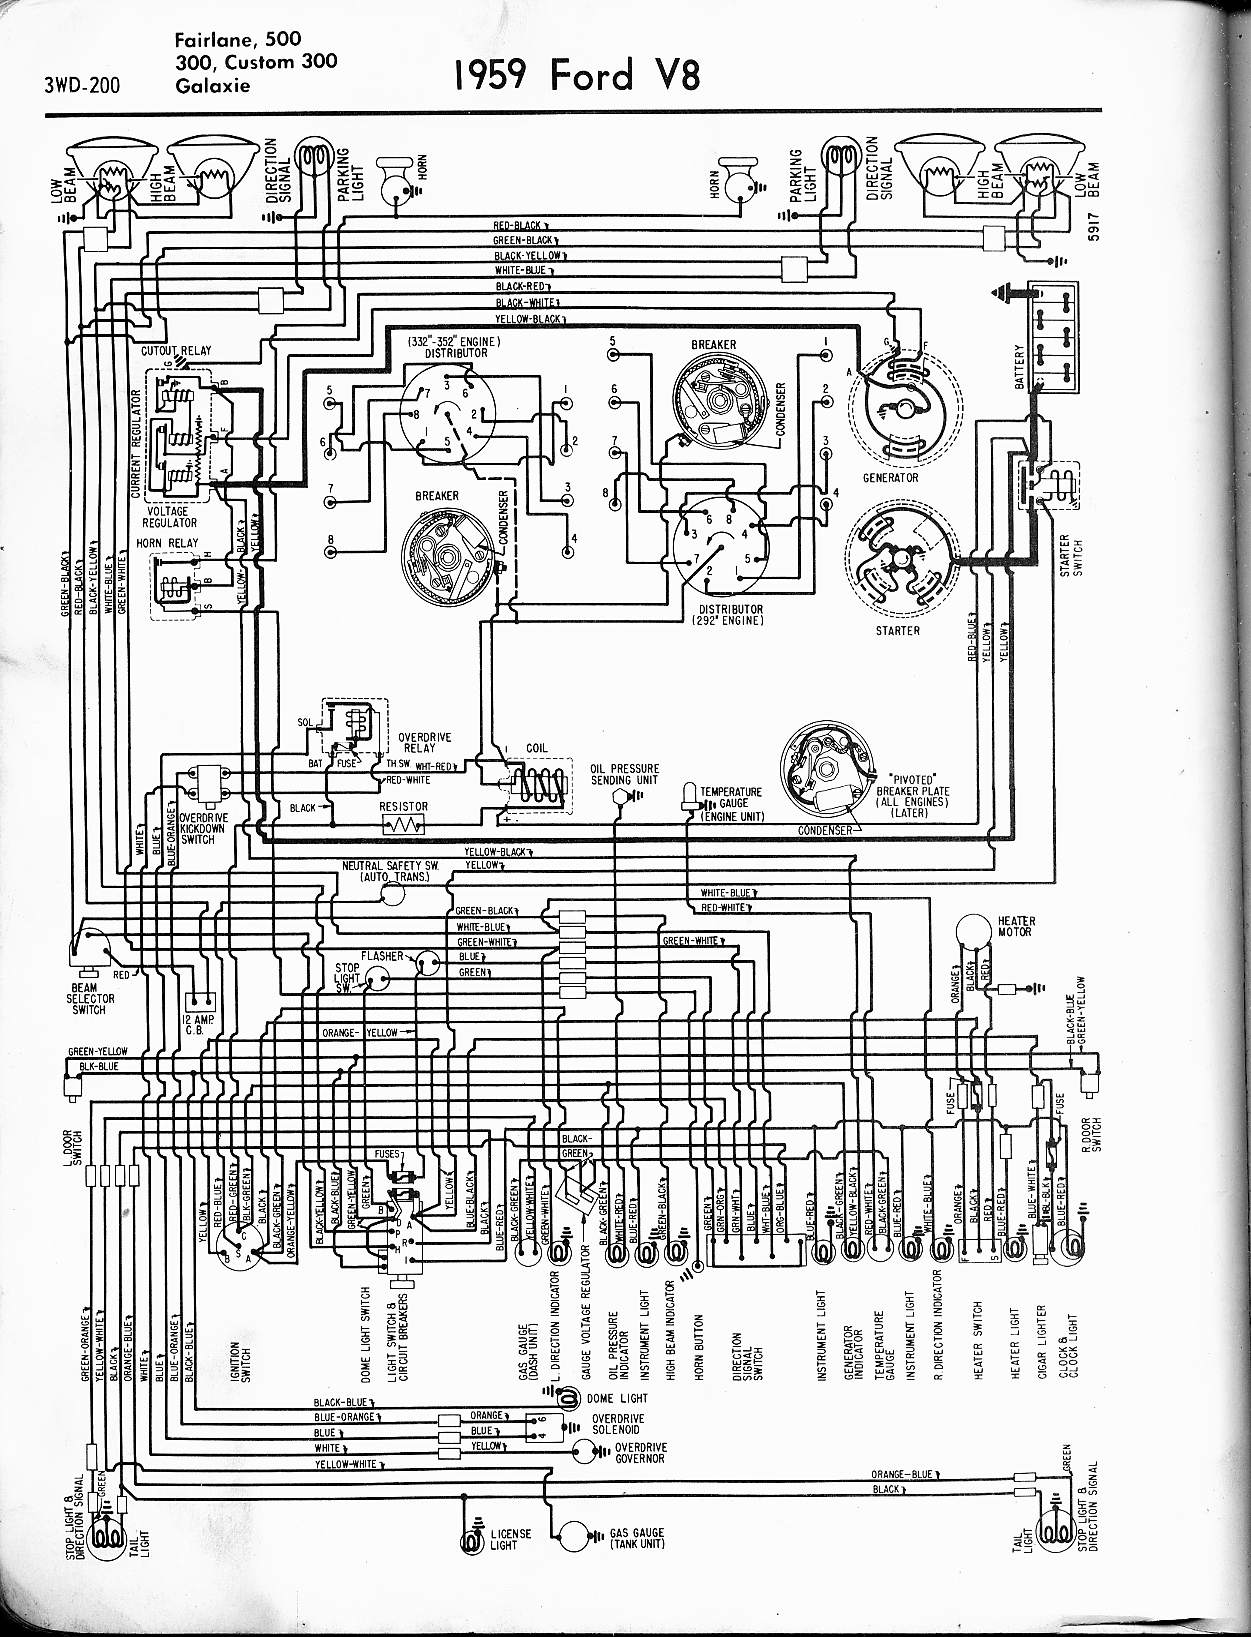 hight resolution of ford galaxie 500 wiring diagram wiring diagram technic57 65 ford wiring diagrams ford galaxie